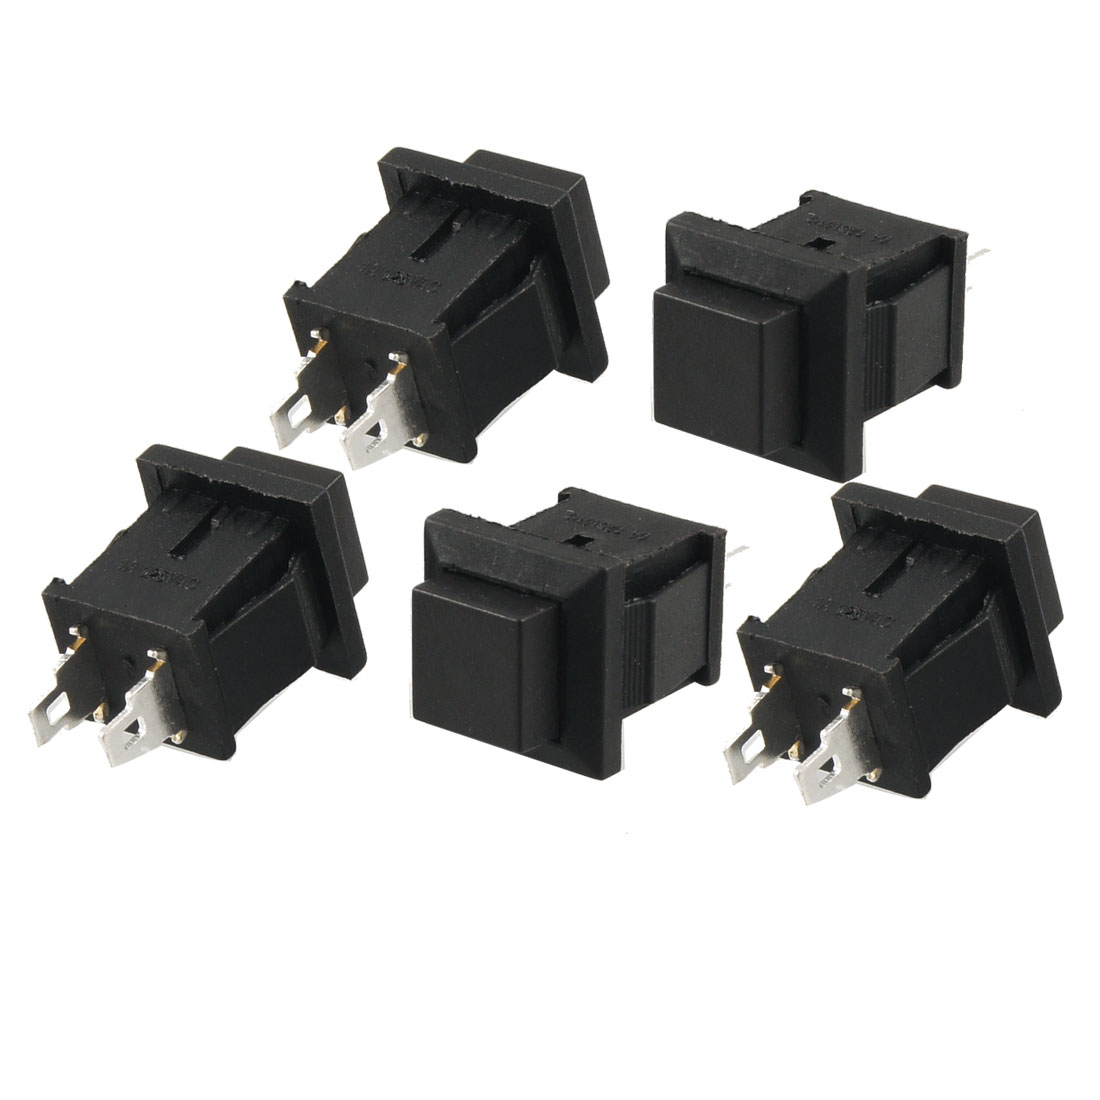 PB04 Square 14 X 14mm Momentary 2Pin SPST Mini Push Button Switch Normally Open